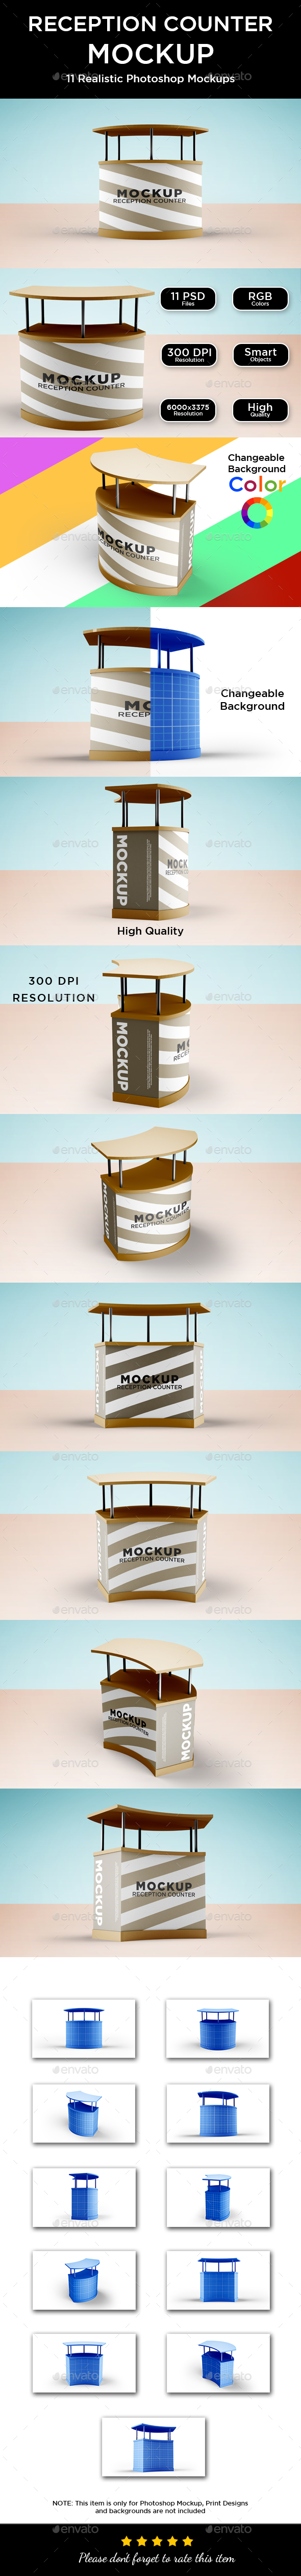 Reception Counter Mockup - Product Mock-Ups Graphics